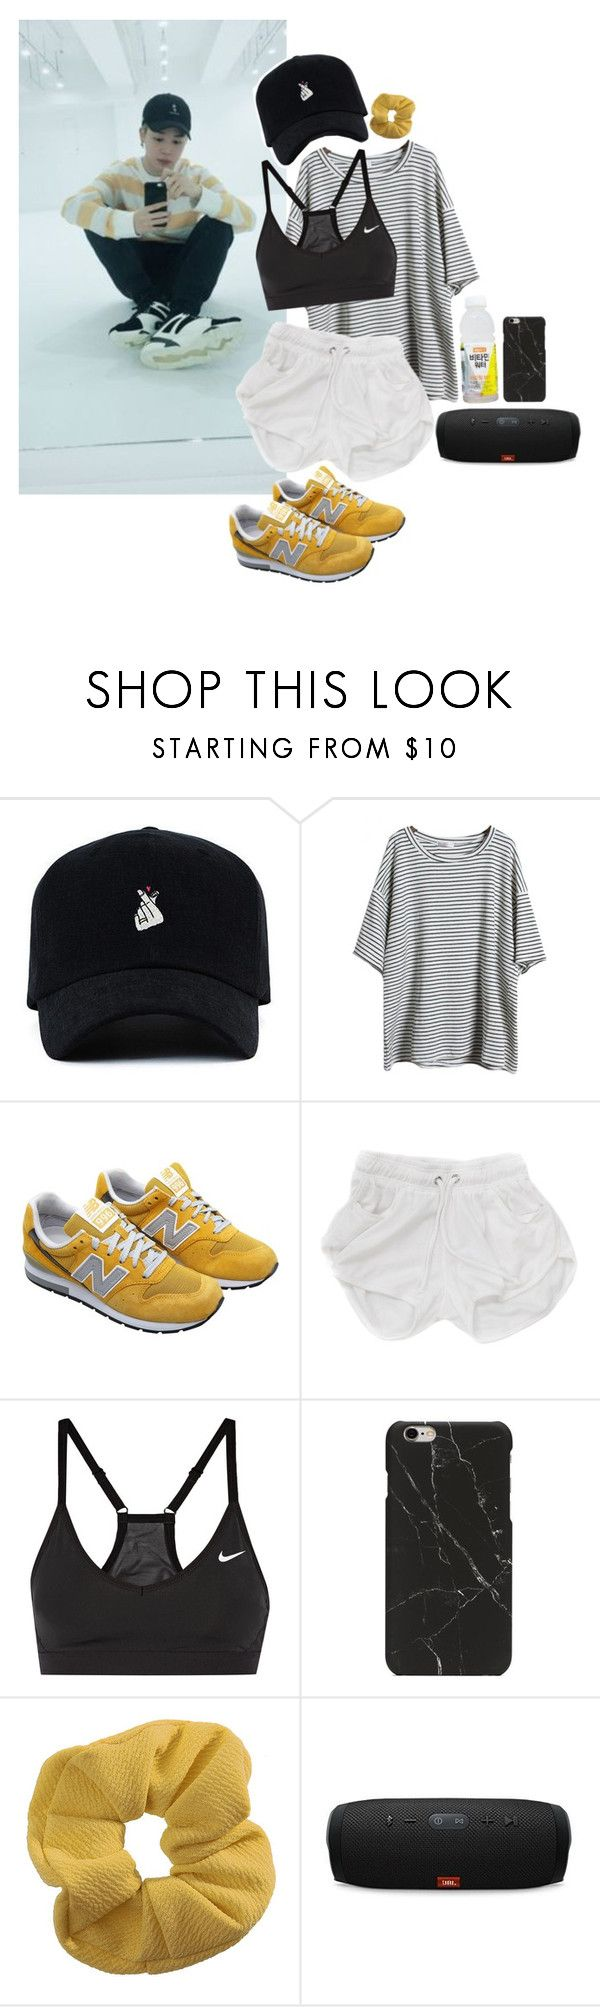 """Dance Practice with Jimin"" by blood-sweat-and-tears ❤ liked on Polyvore featuring New Balance, NIKE, Topshop and JBL"